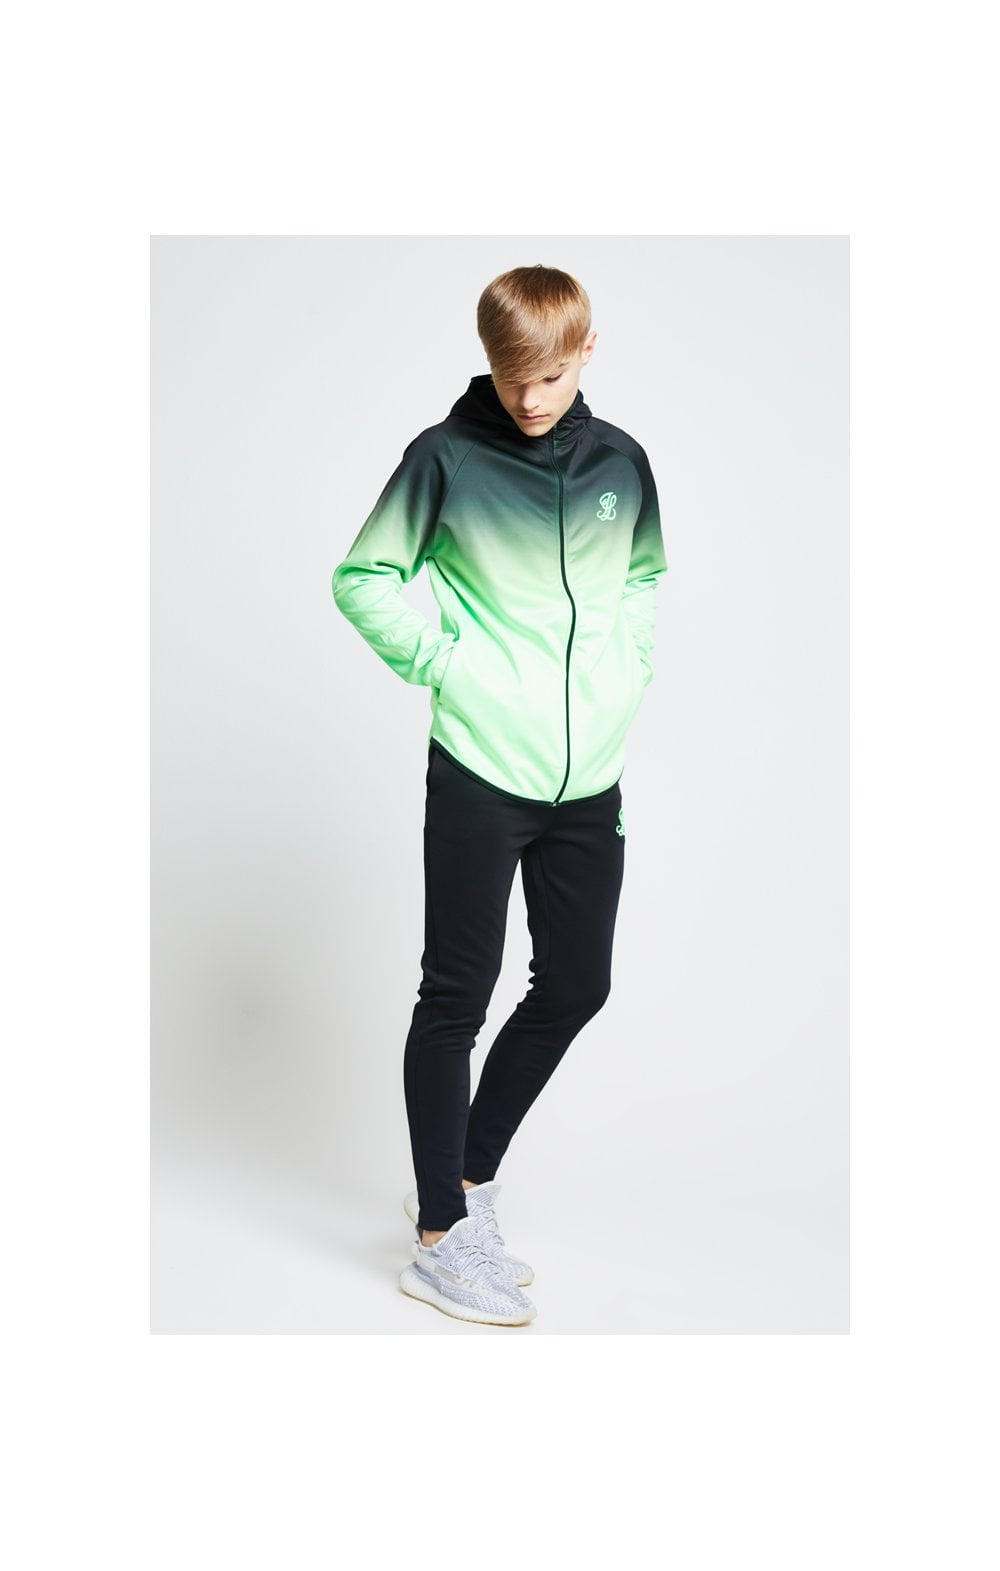 Load image into Gallery viewer, Illusive London Athlete Zip Through Hoodie - Black & Neon Green (3)